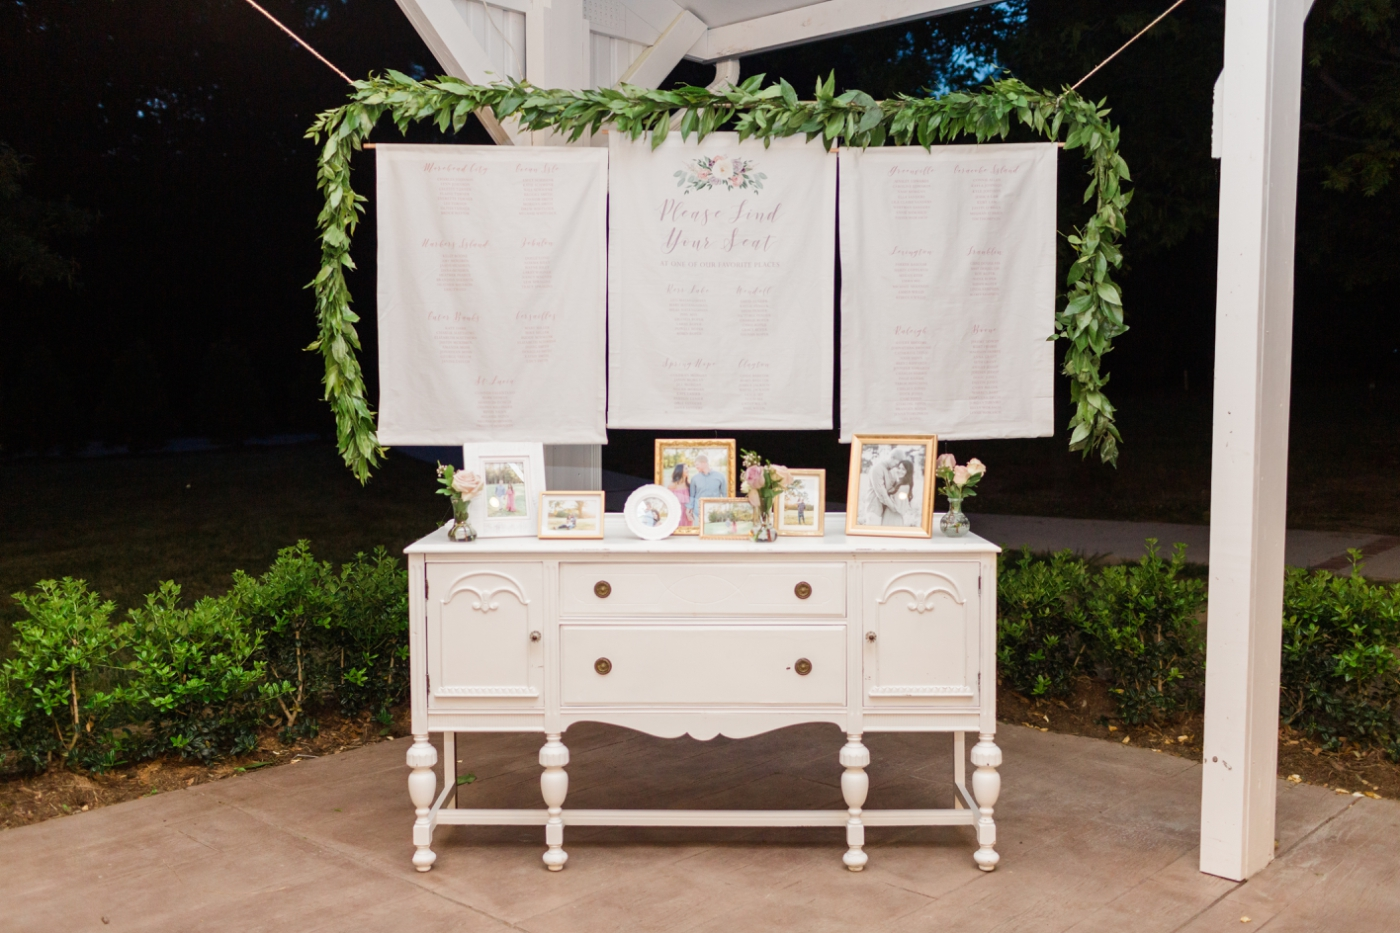 fabric seating chart with custom illustrations